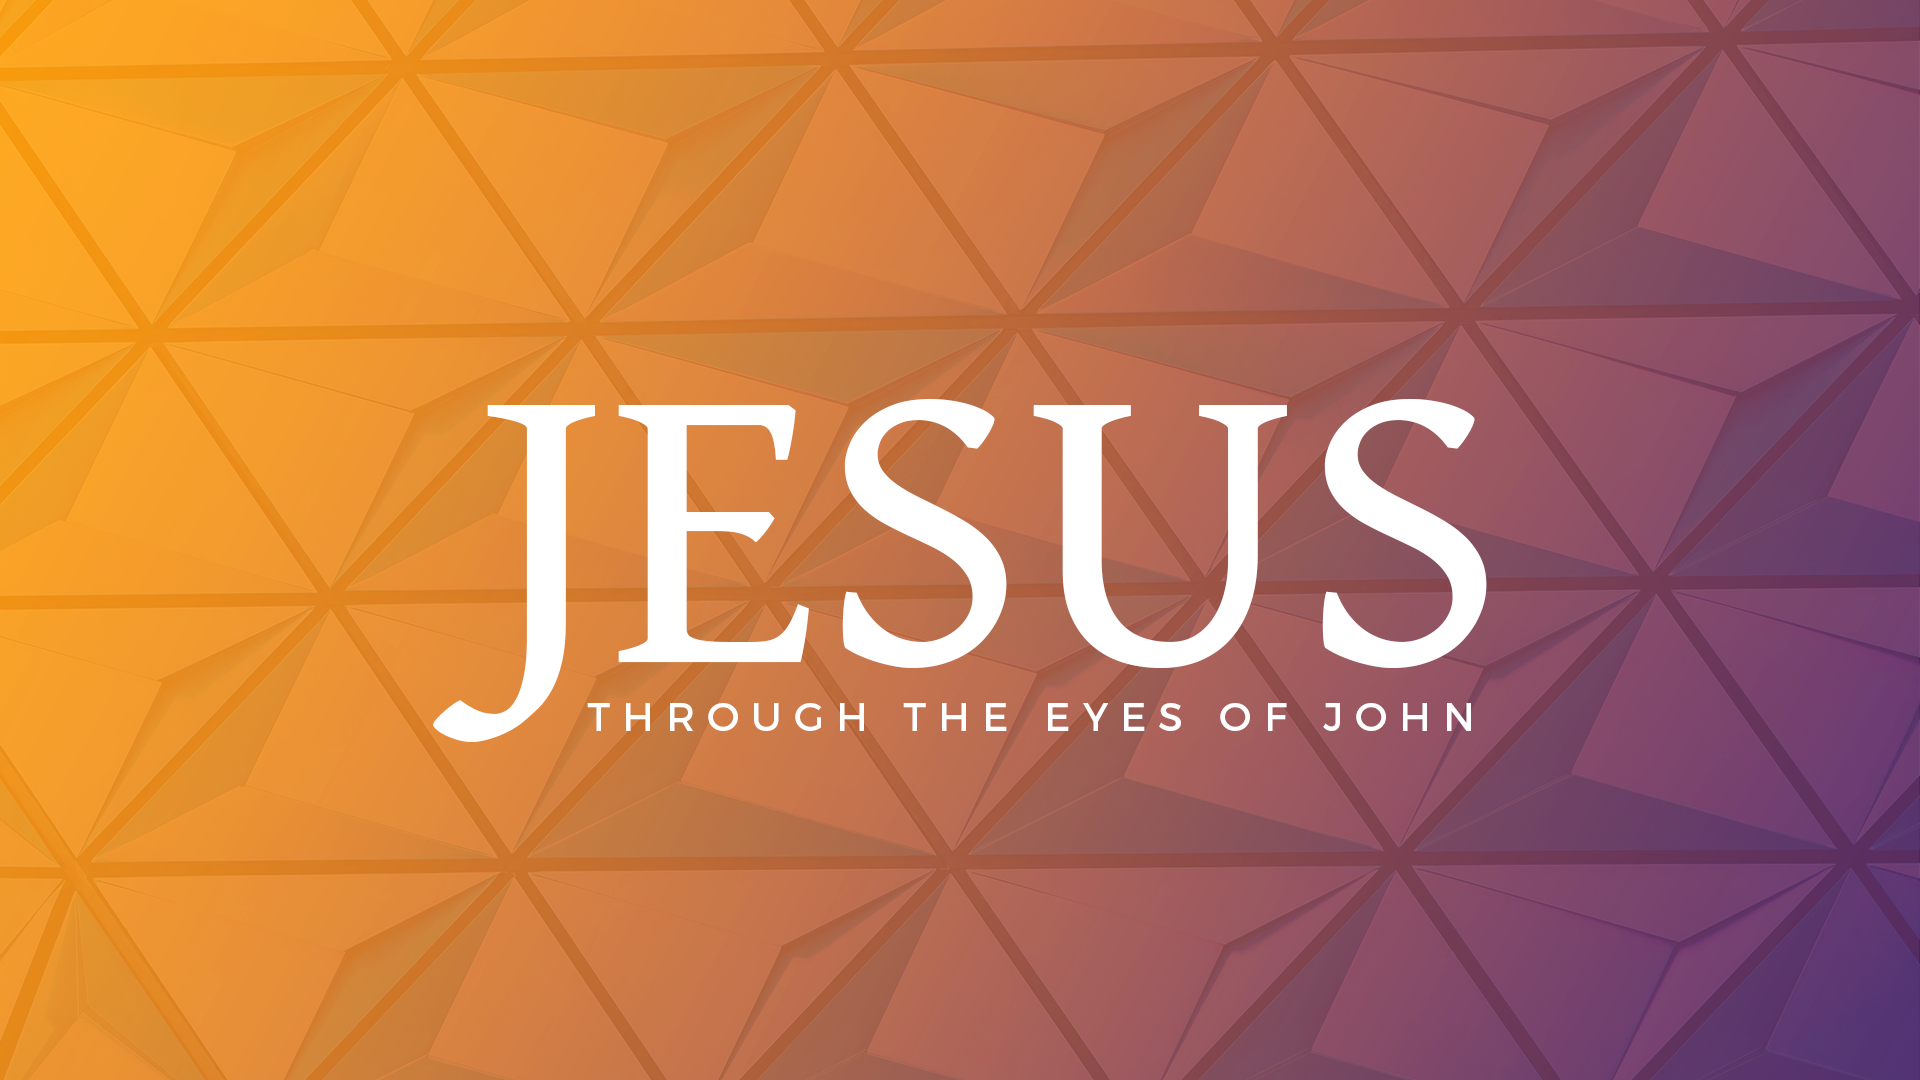 Jesus-Through the Eyes of John VI